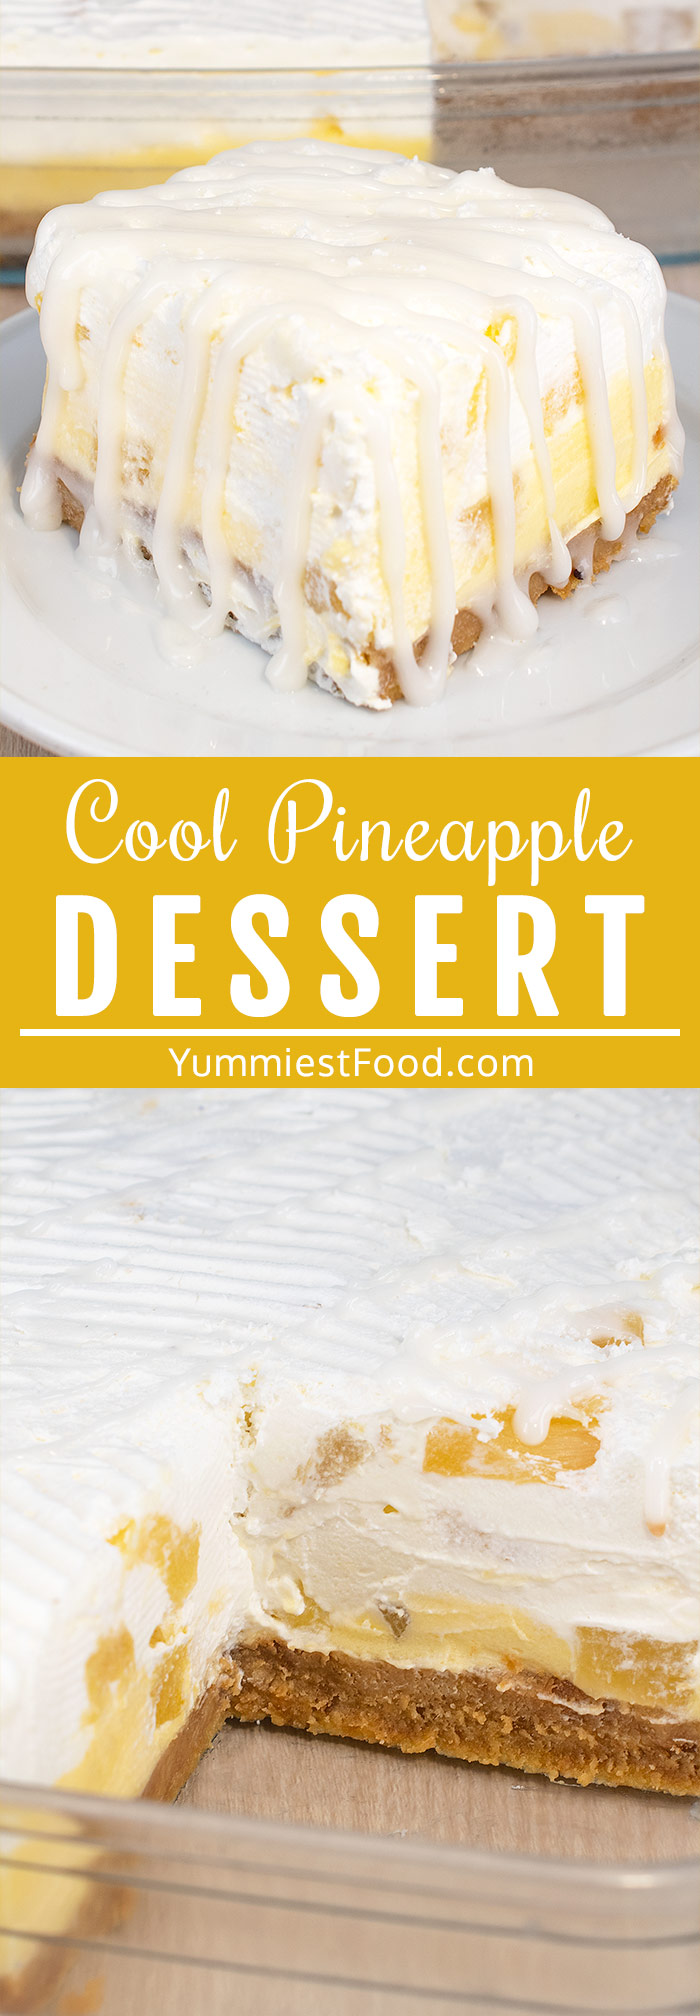 Easy Cool Pineapple Dessert - Made with a graham cracker crust, that's easy to make and canned pineapple